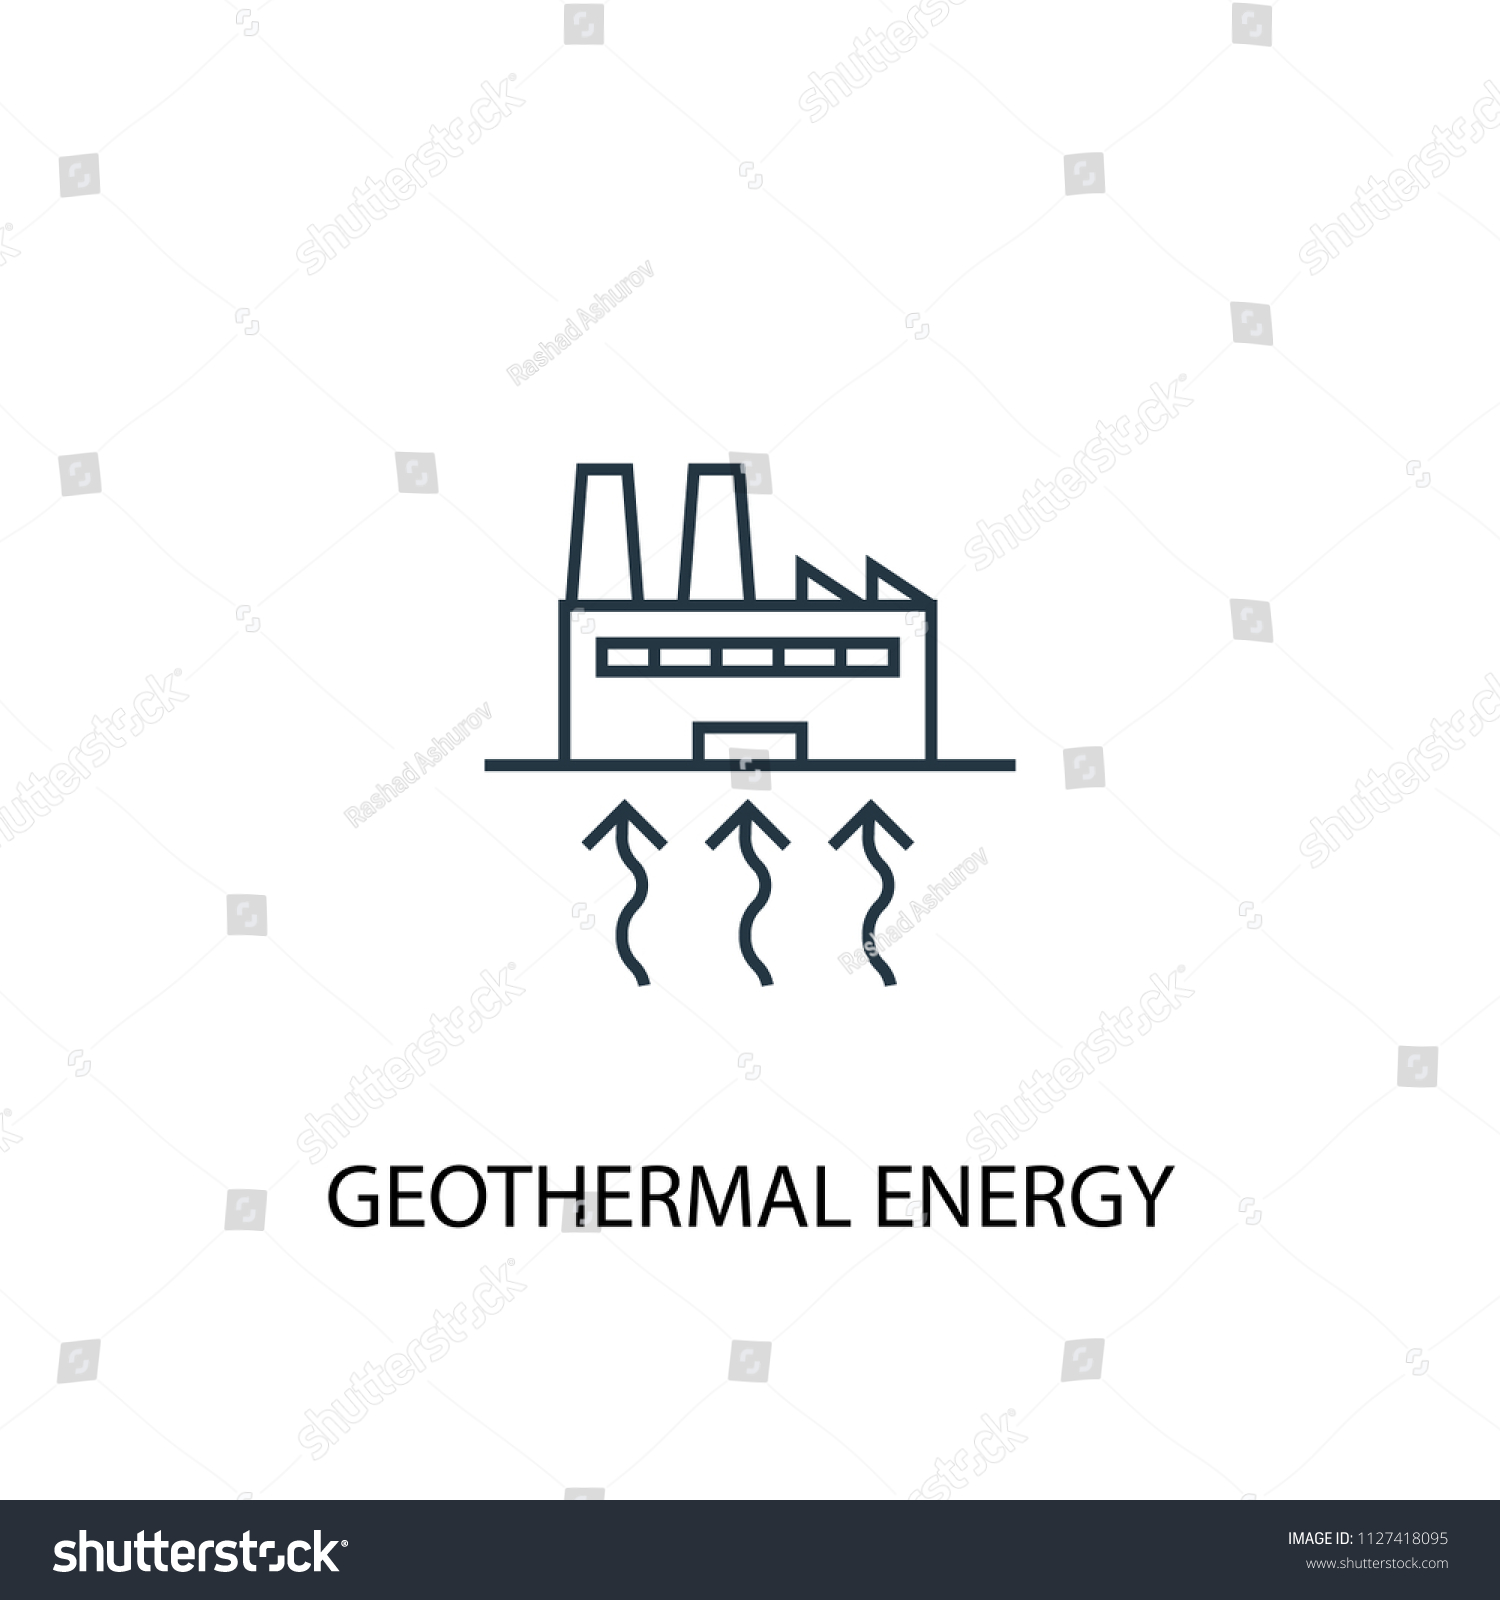 hight resolution of geothermal energy concept line icon simple element illustration geothermal energy concept outline symbol design